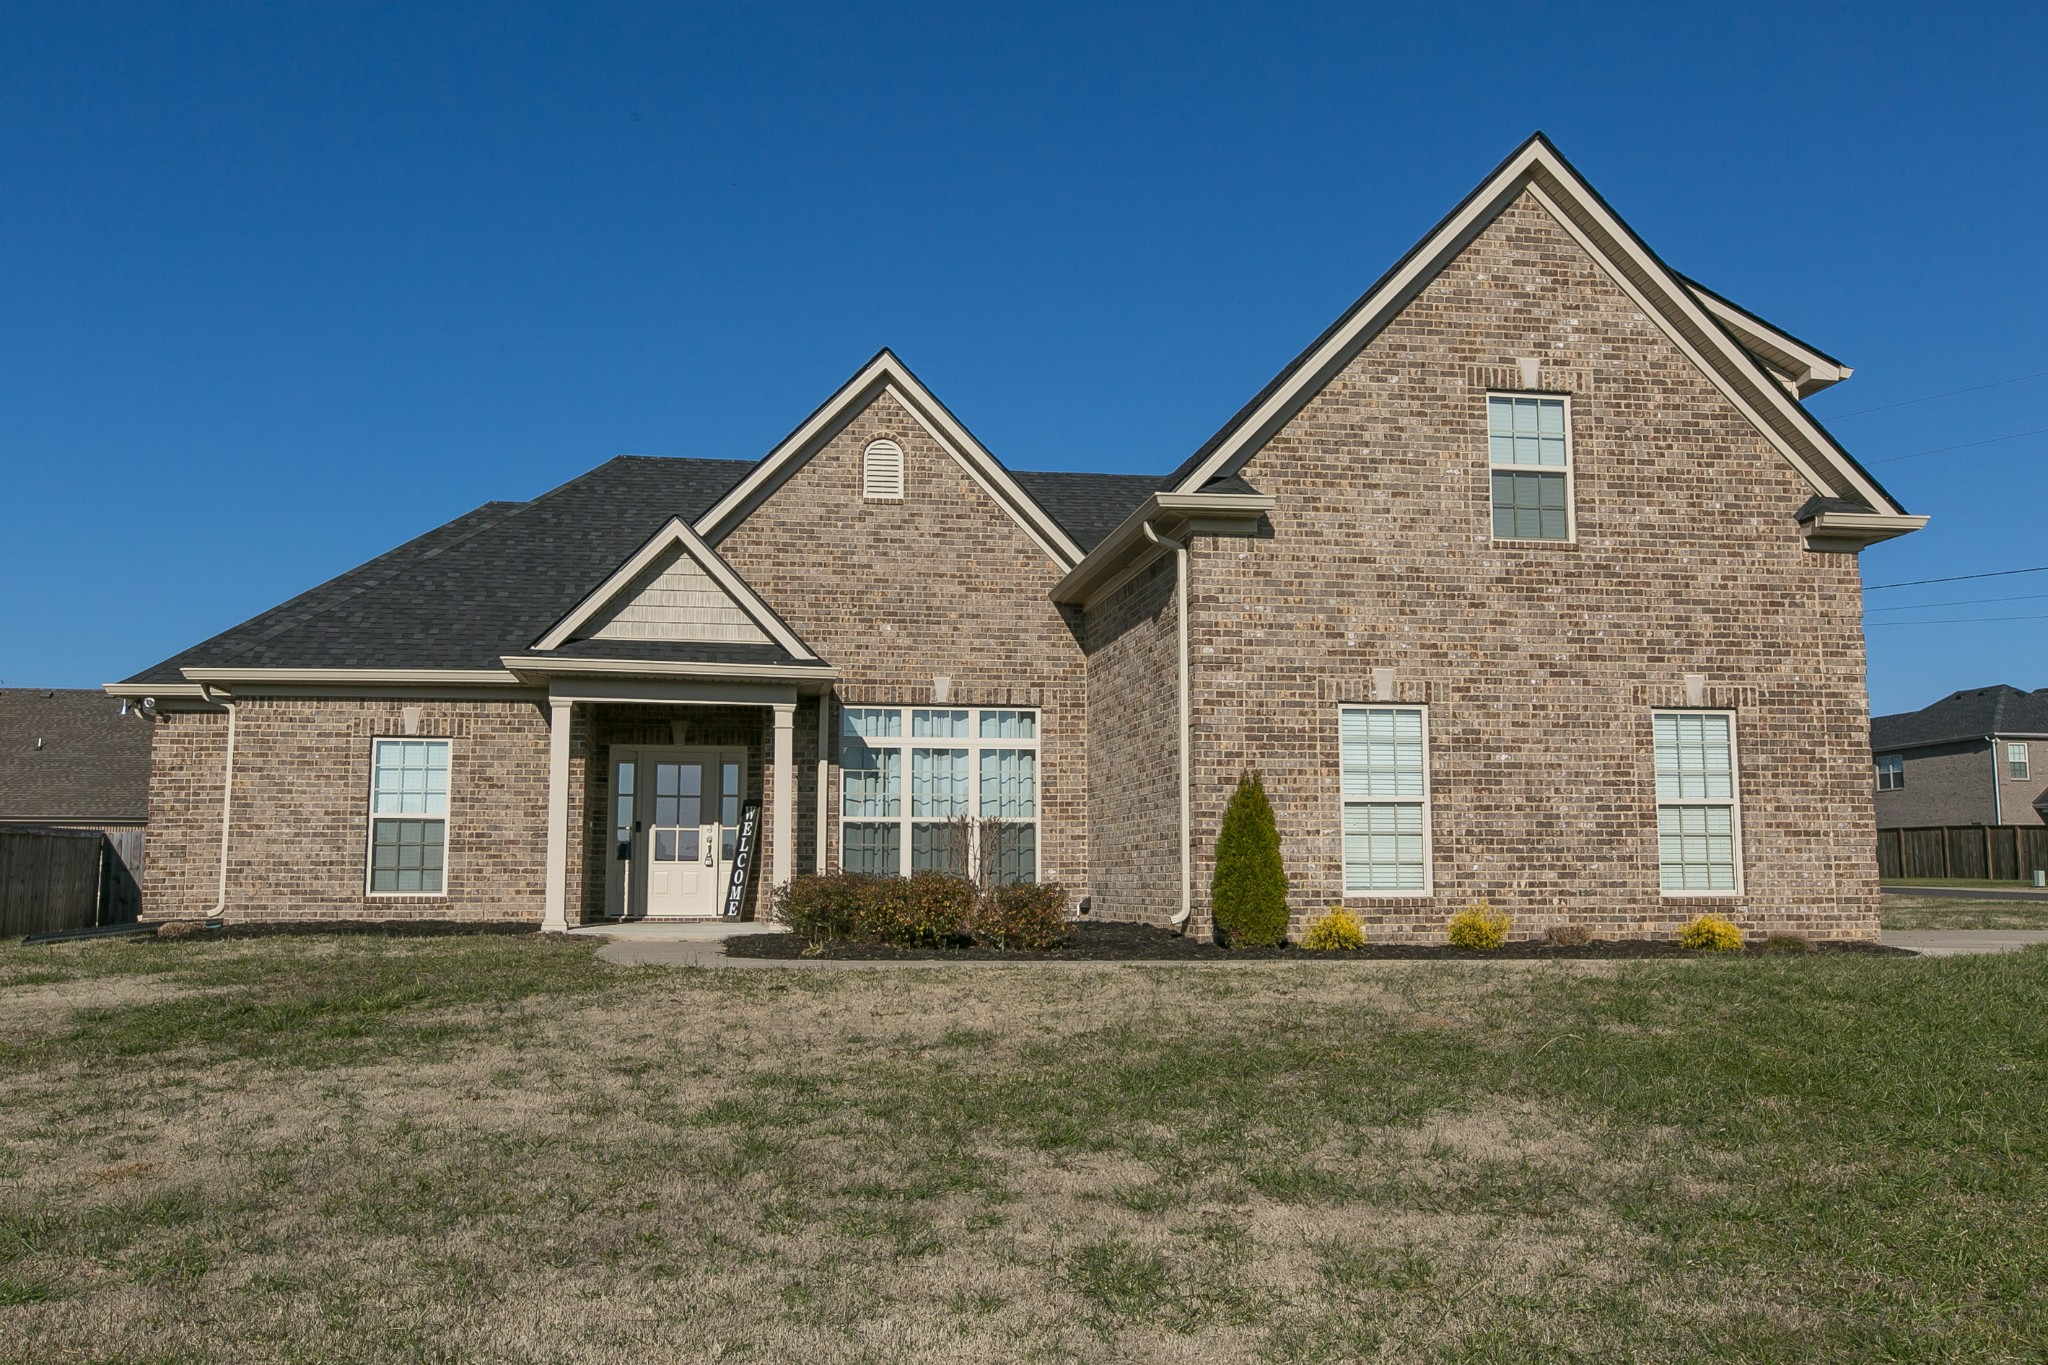 1169 Millstone Creek Rd Property Photo - Lascassas, TN real estate listing